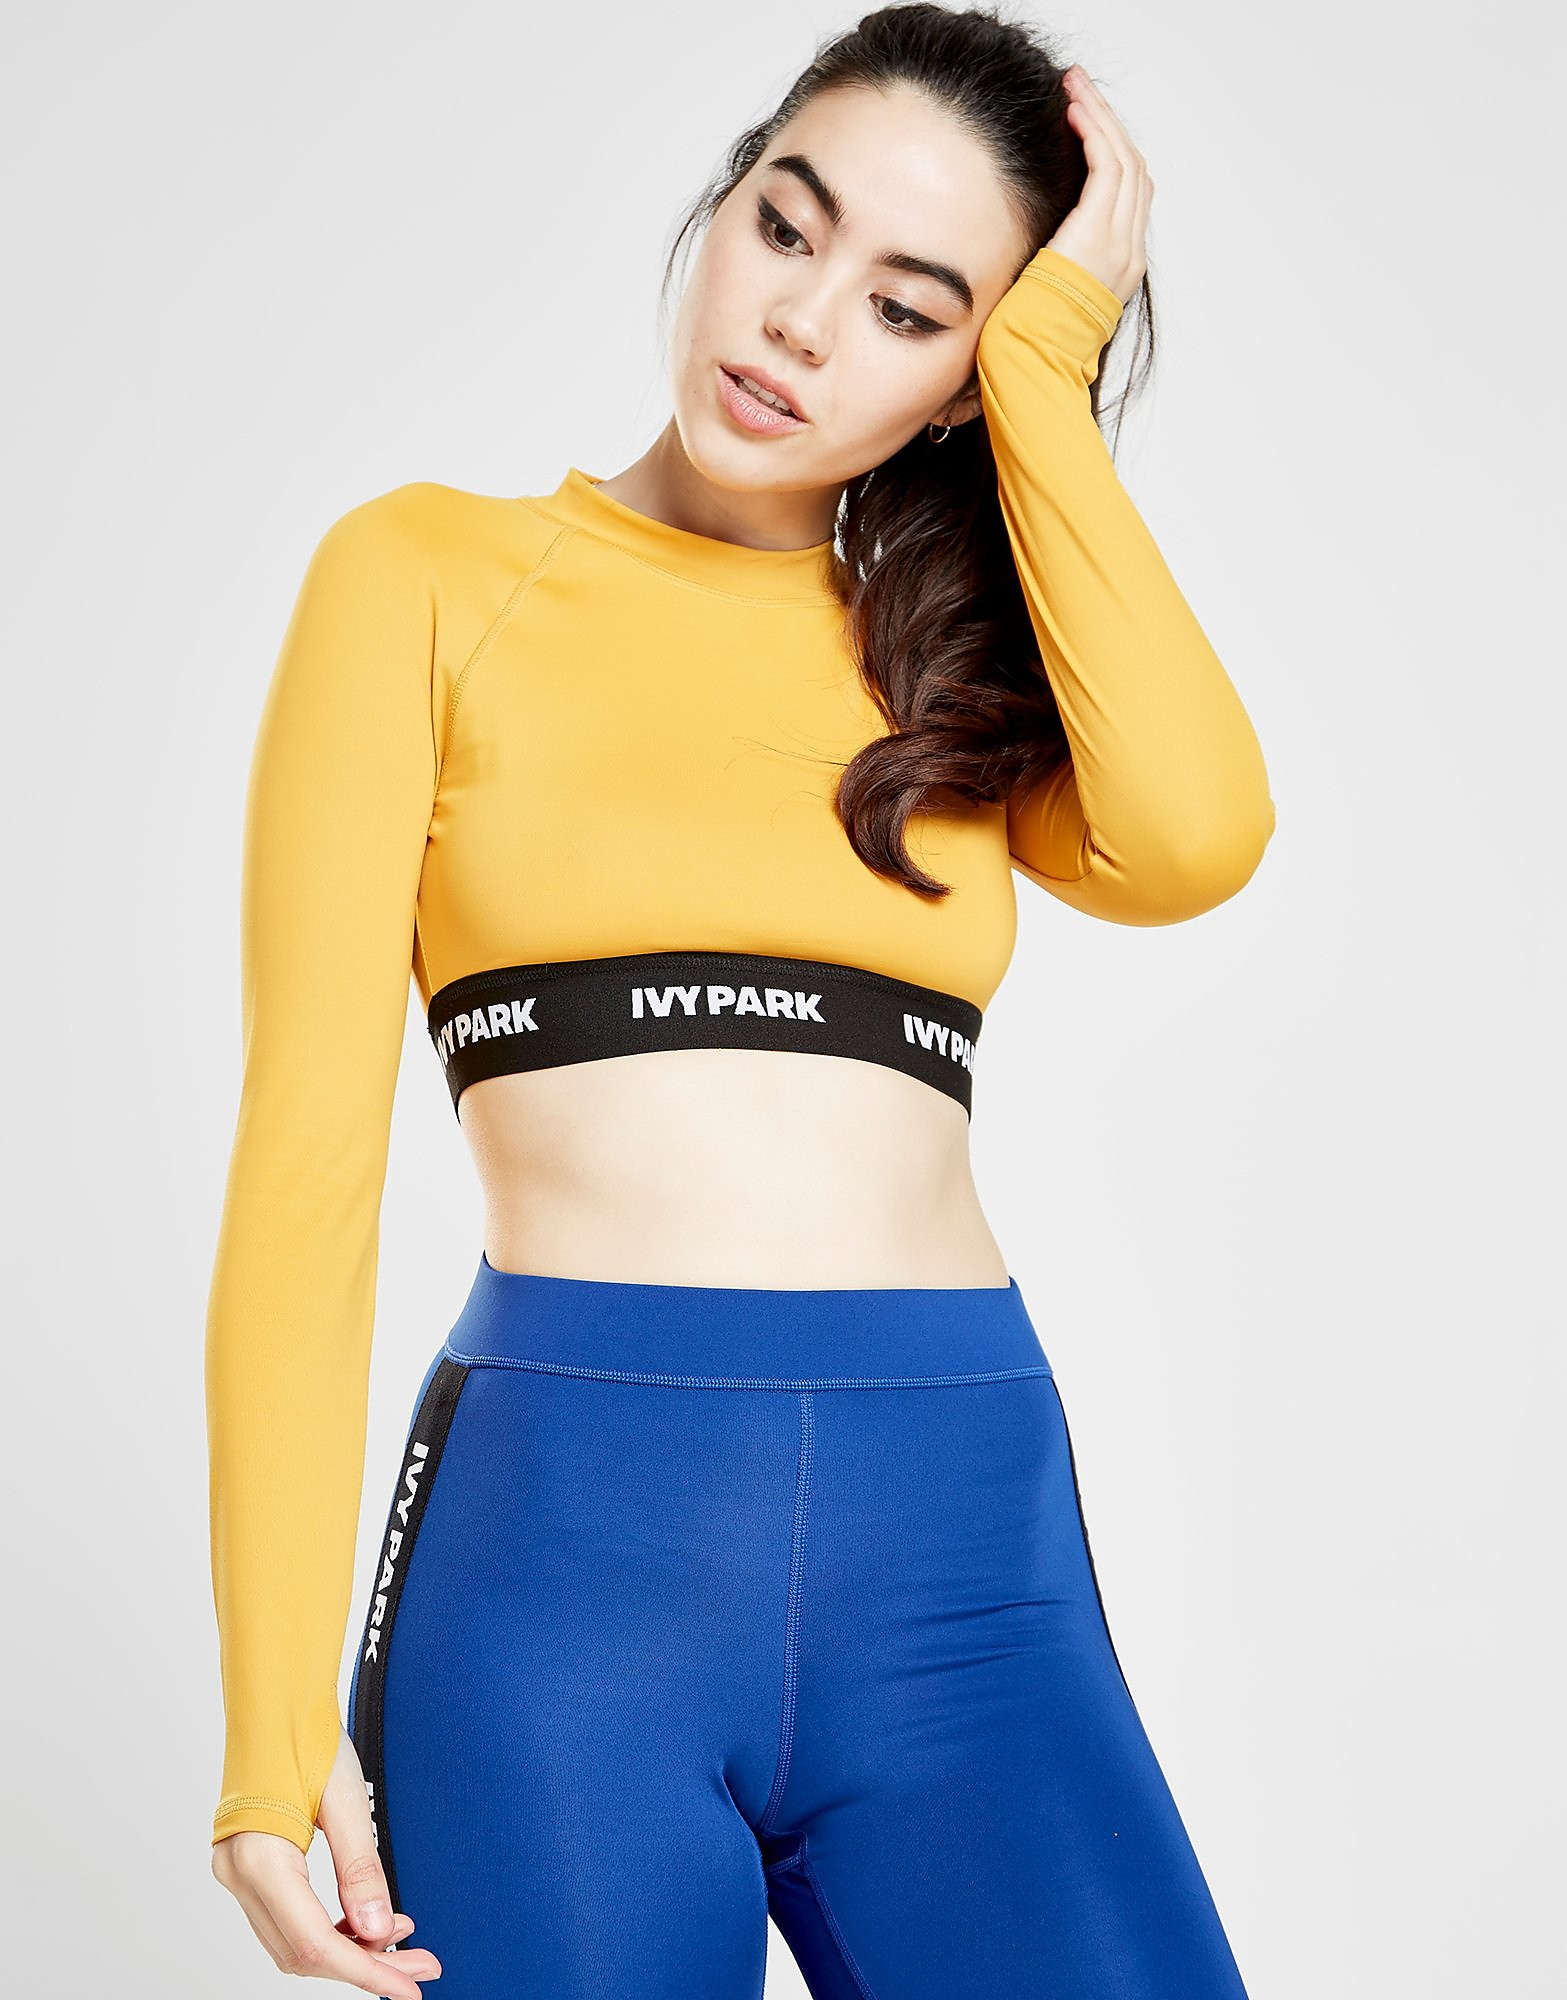 IVY PARK Tape Logo Long Sleeve Top - Gold - Womens, Gold